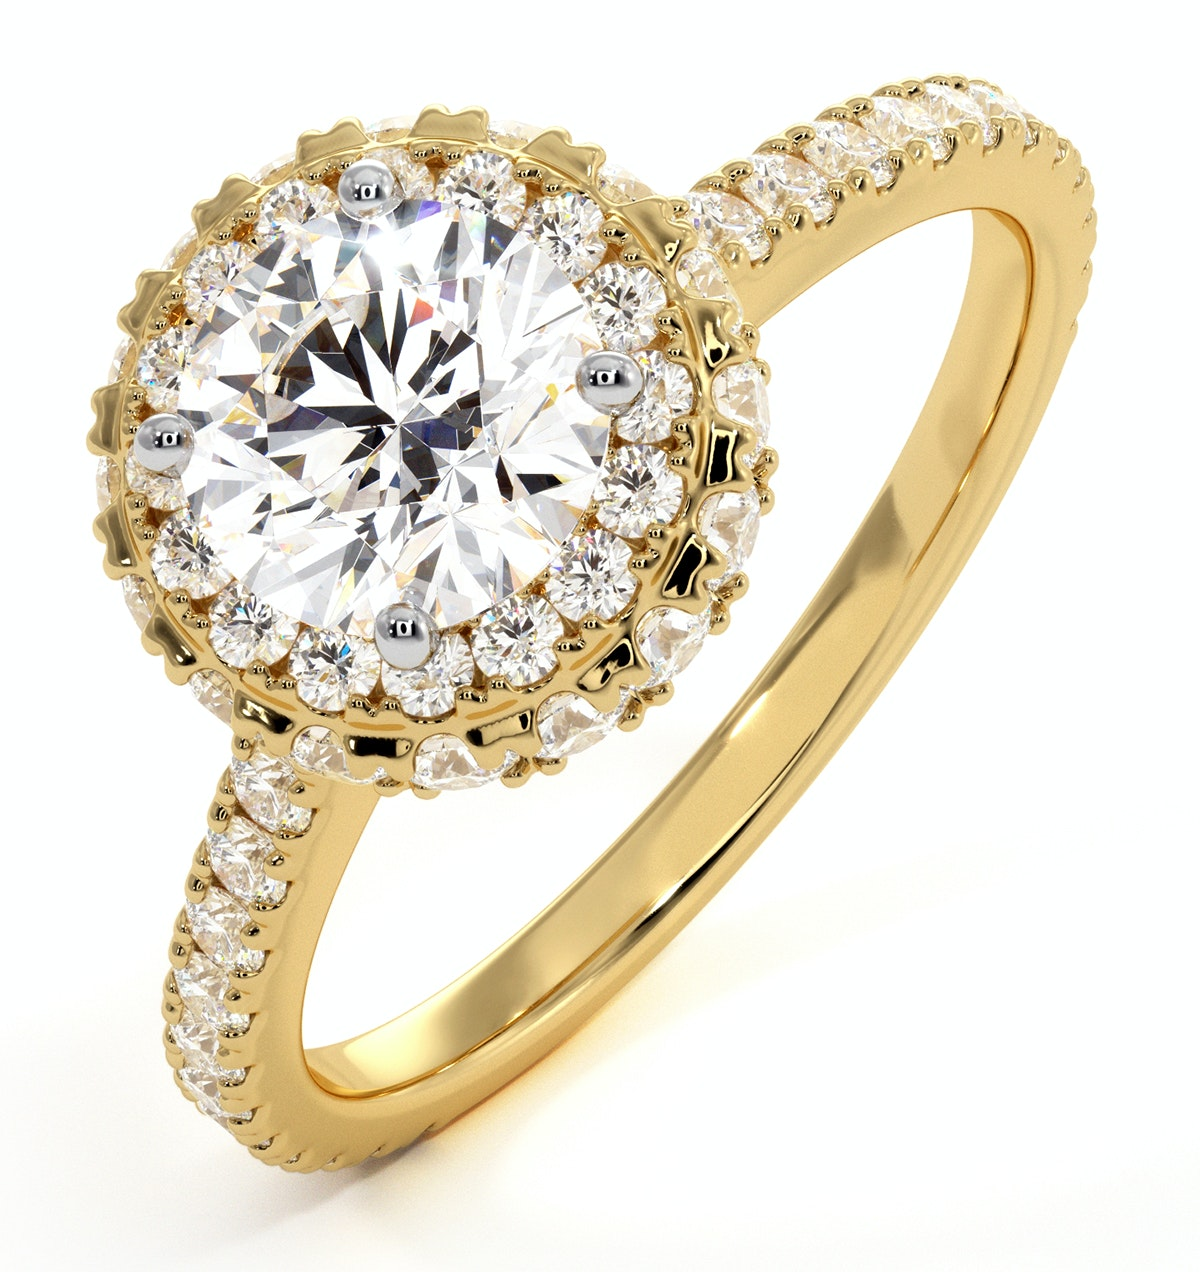 Valerie GIA Diamond Halo Engagement Ring in 18K Gold 1.60ct G/SI1